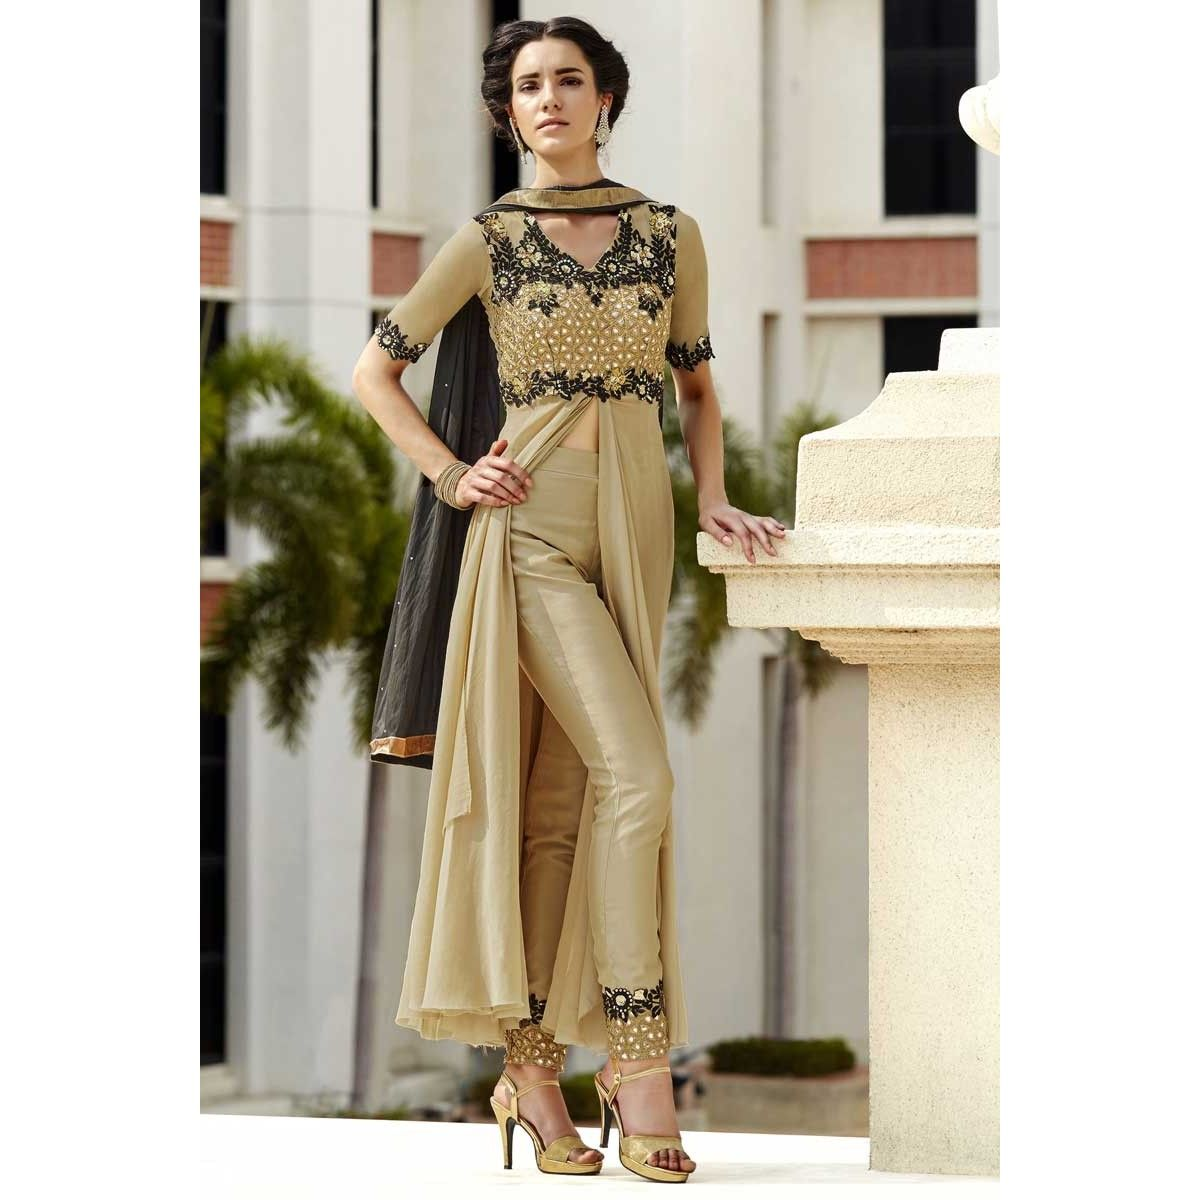 Clothes shops online, Trouser georgette dress for prom, Cream resham ...